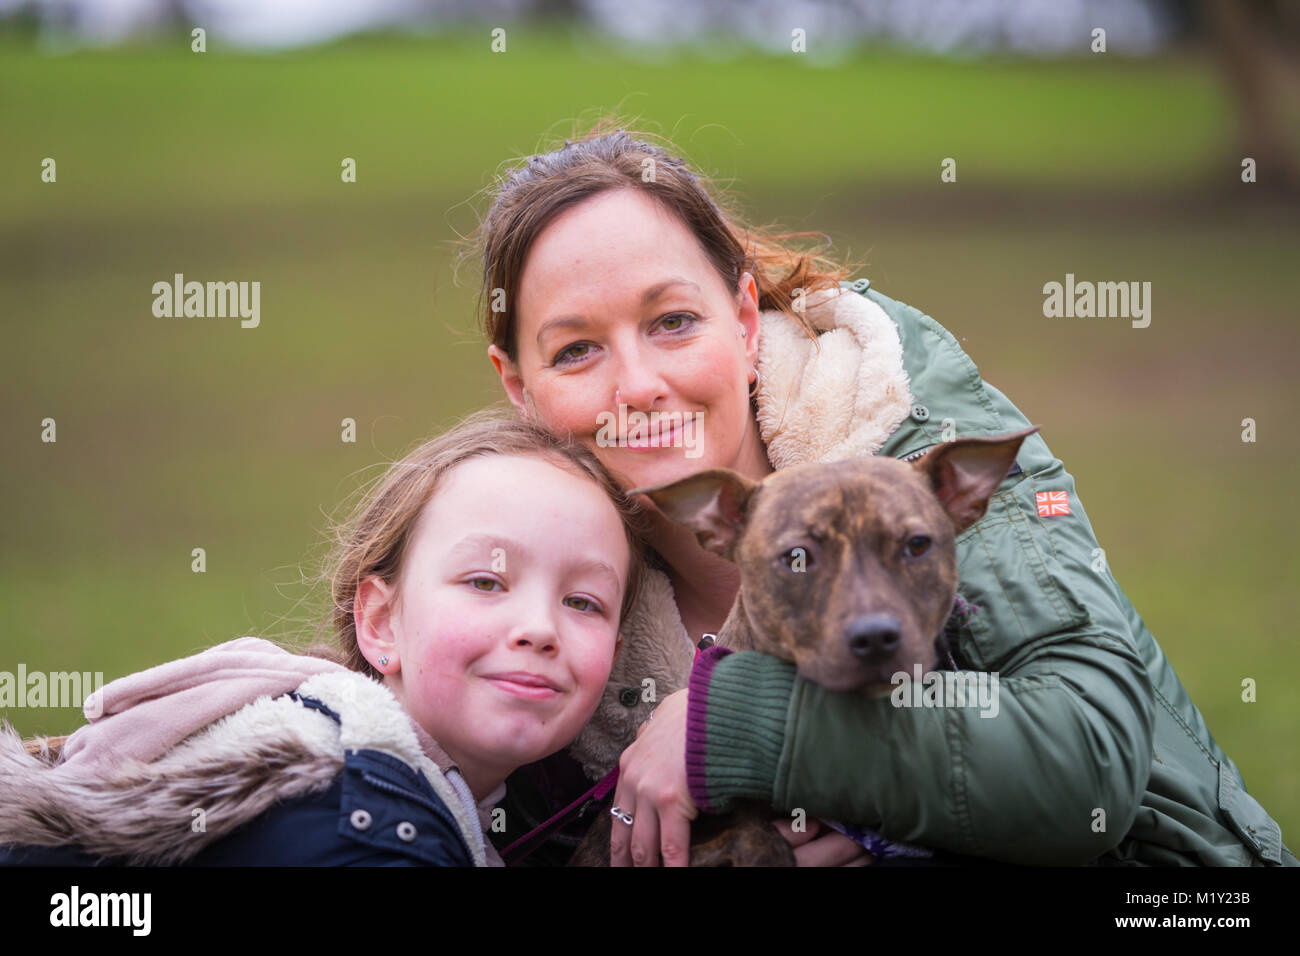 Woman with her daughter and their pet staffordshire bull terrier dog in the park smiling - Stock Image